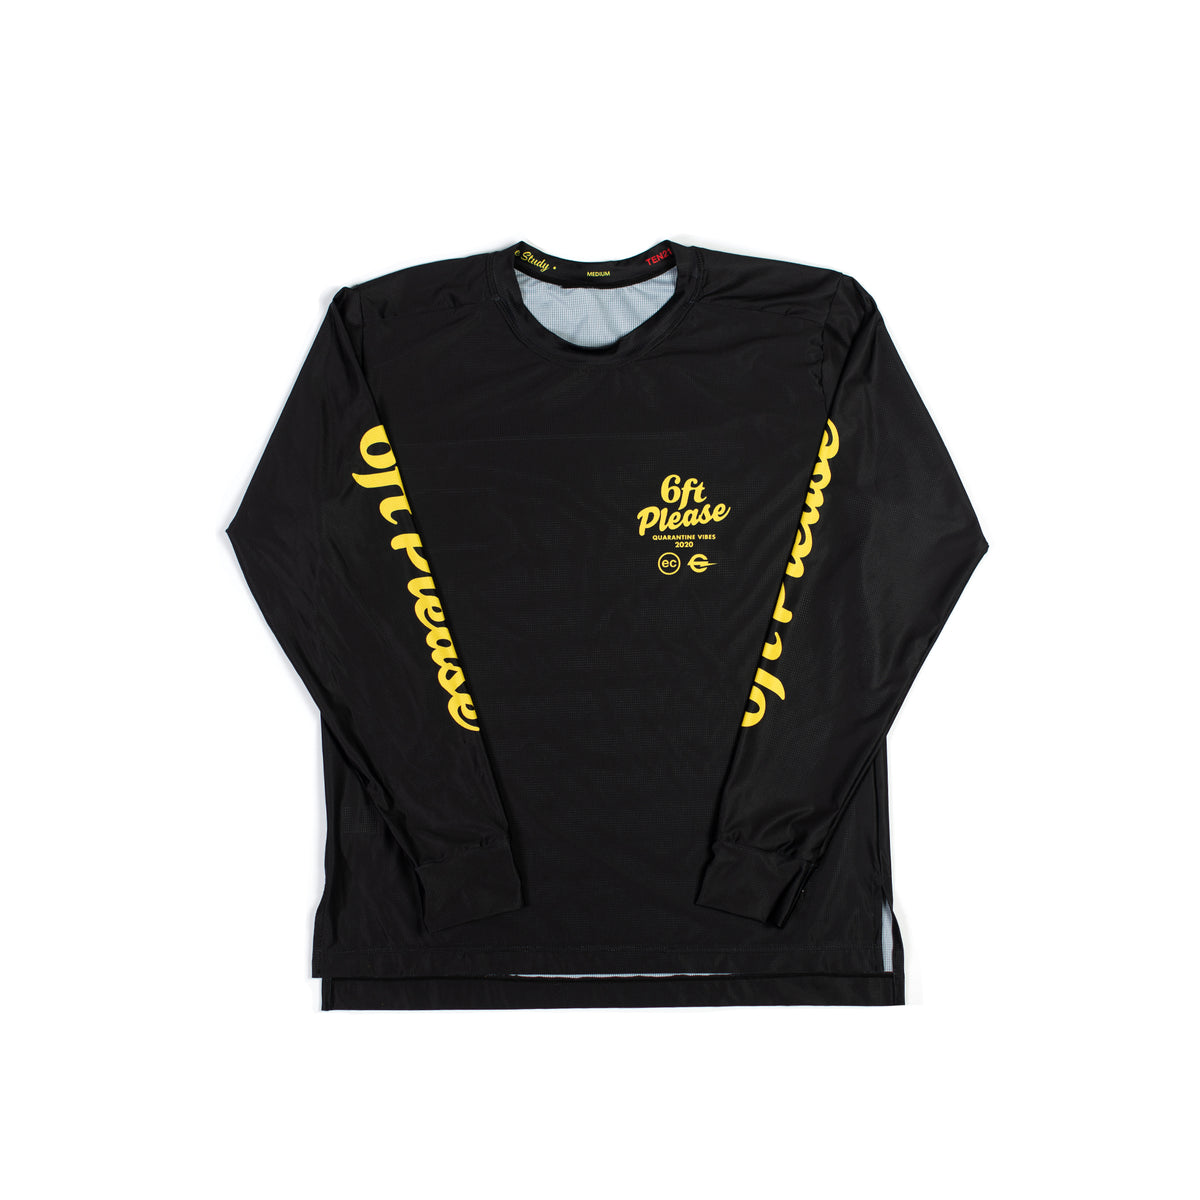 6FT PLEASE - VIRGIL LONG SLEEVE TECH TEE - BLACK